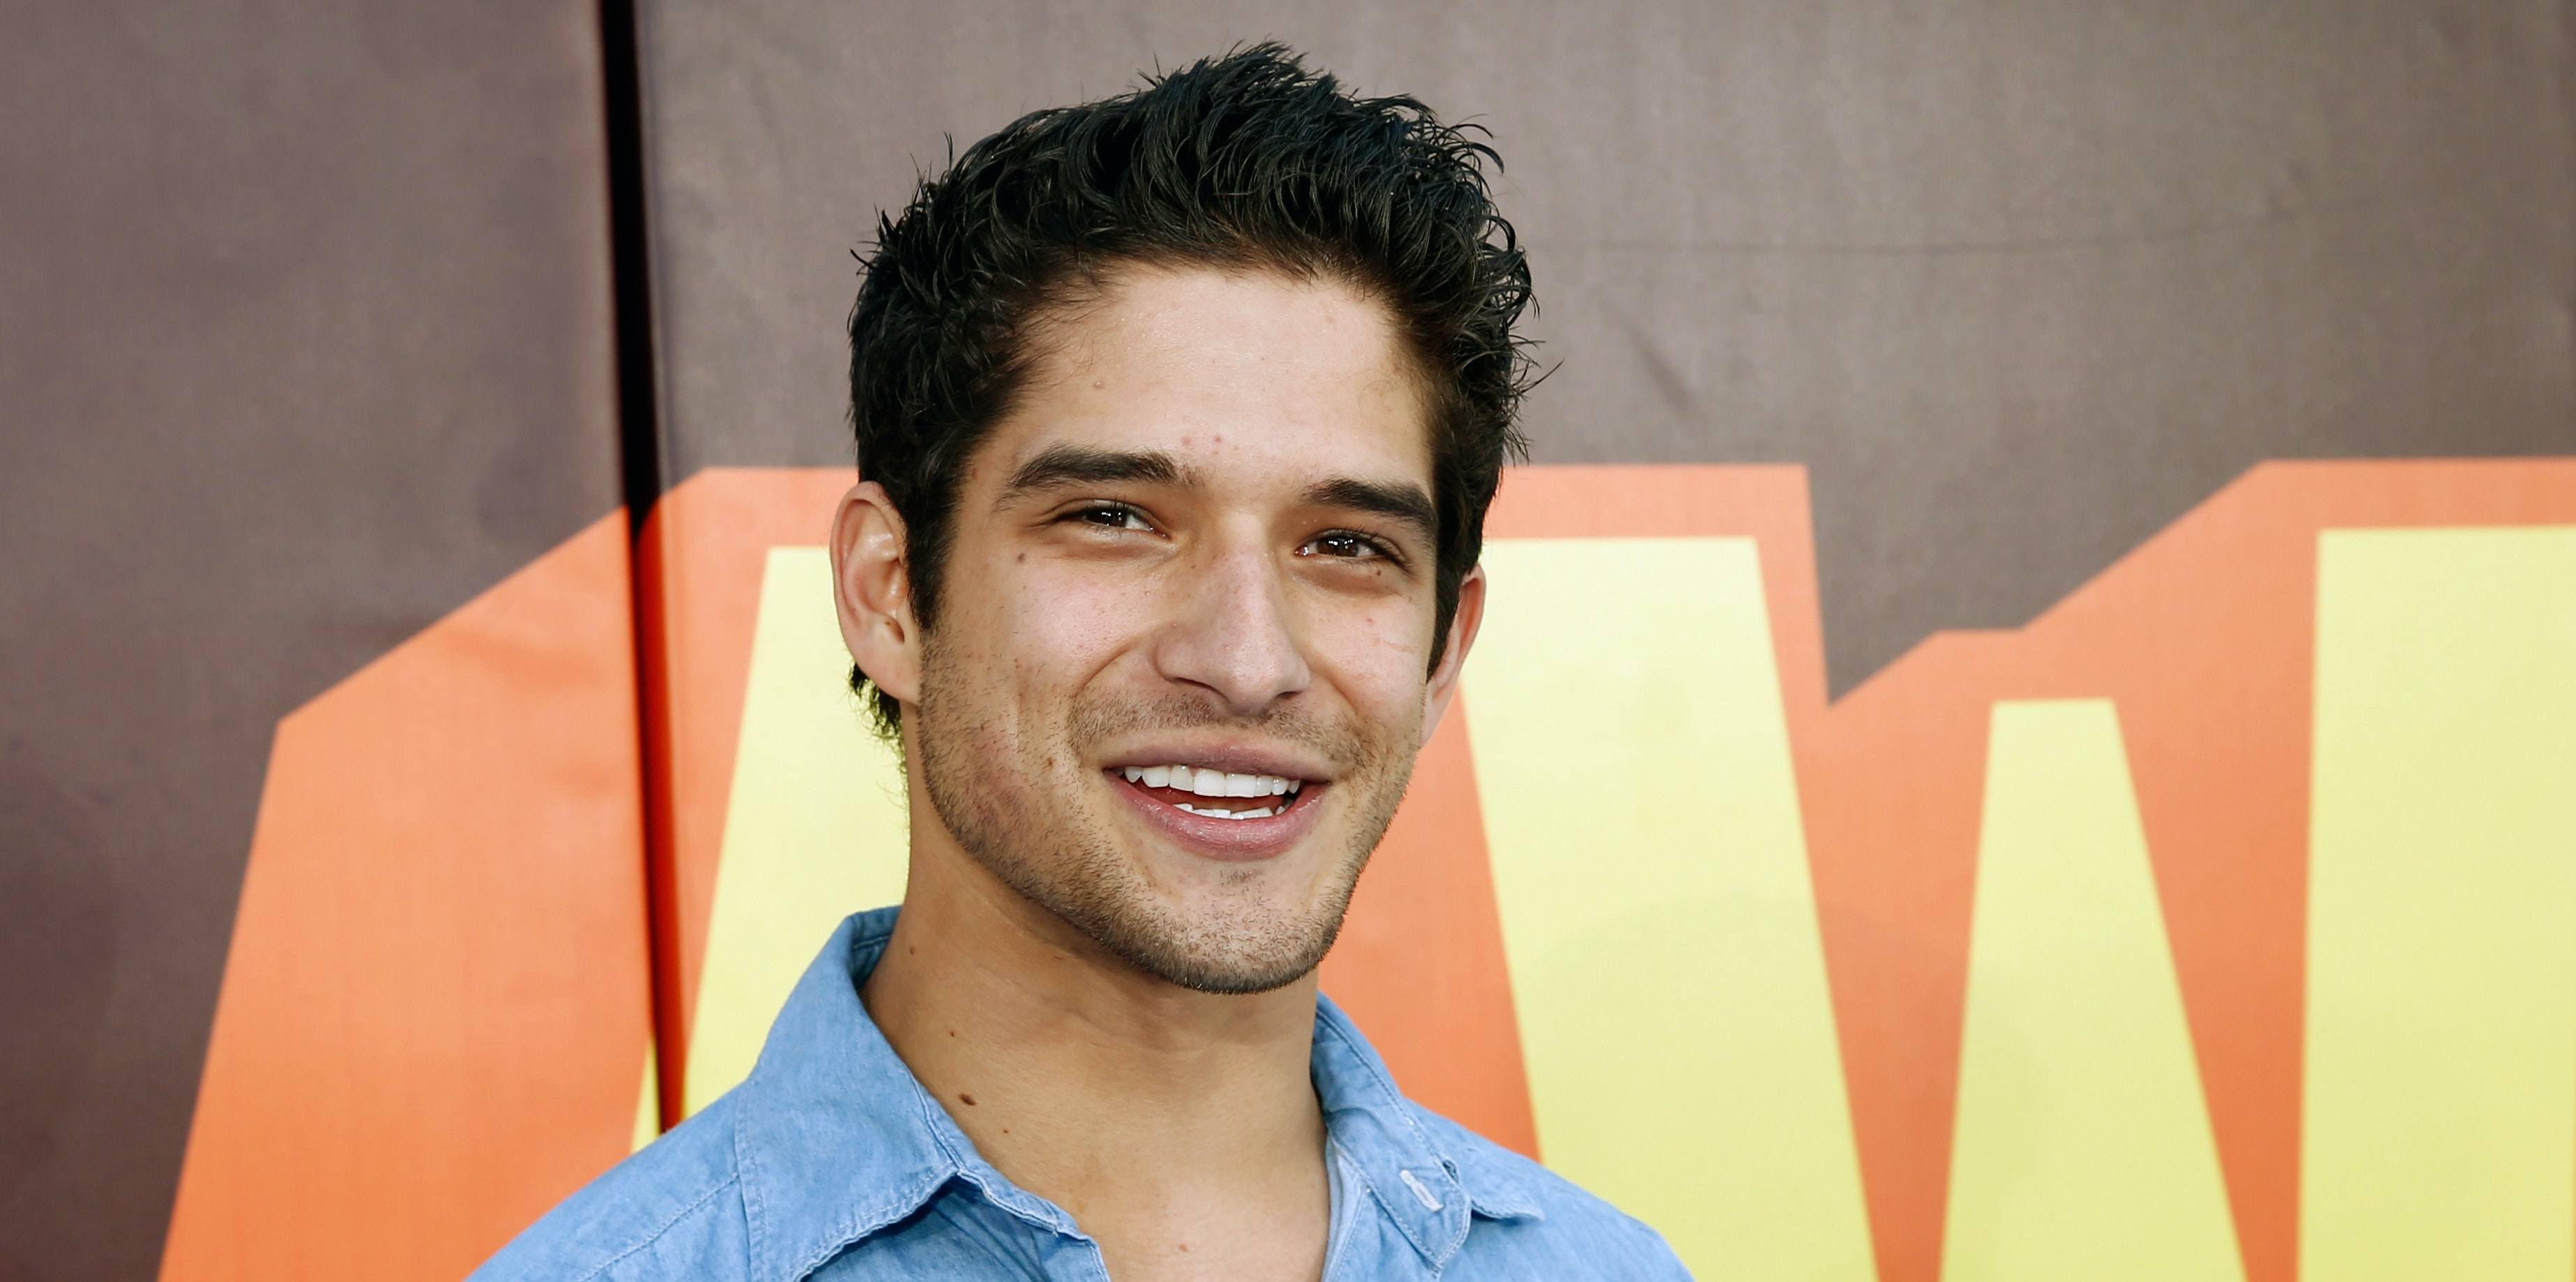 LOS ANGELES, CA - APRIL 12:  Actor Tyler Posey attends The 2015 MTV Movie Awards at Nokia Theatre L.A. Live on April 12, 2015 in Los Angeles, California.  (Photo by Rich Polk/Getty Images for MTV)